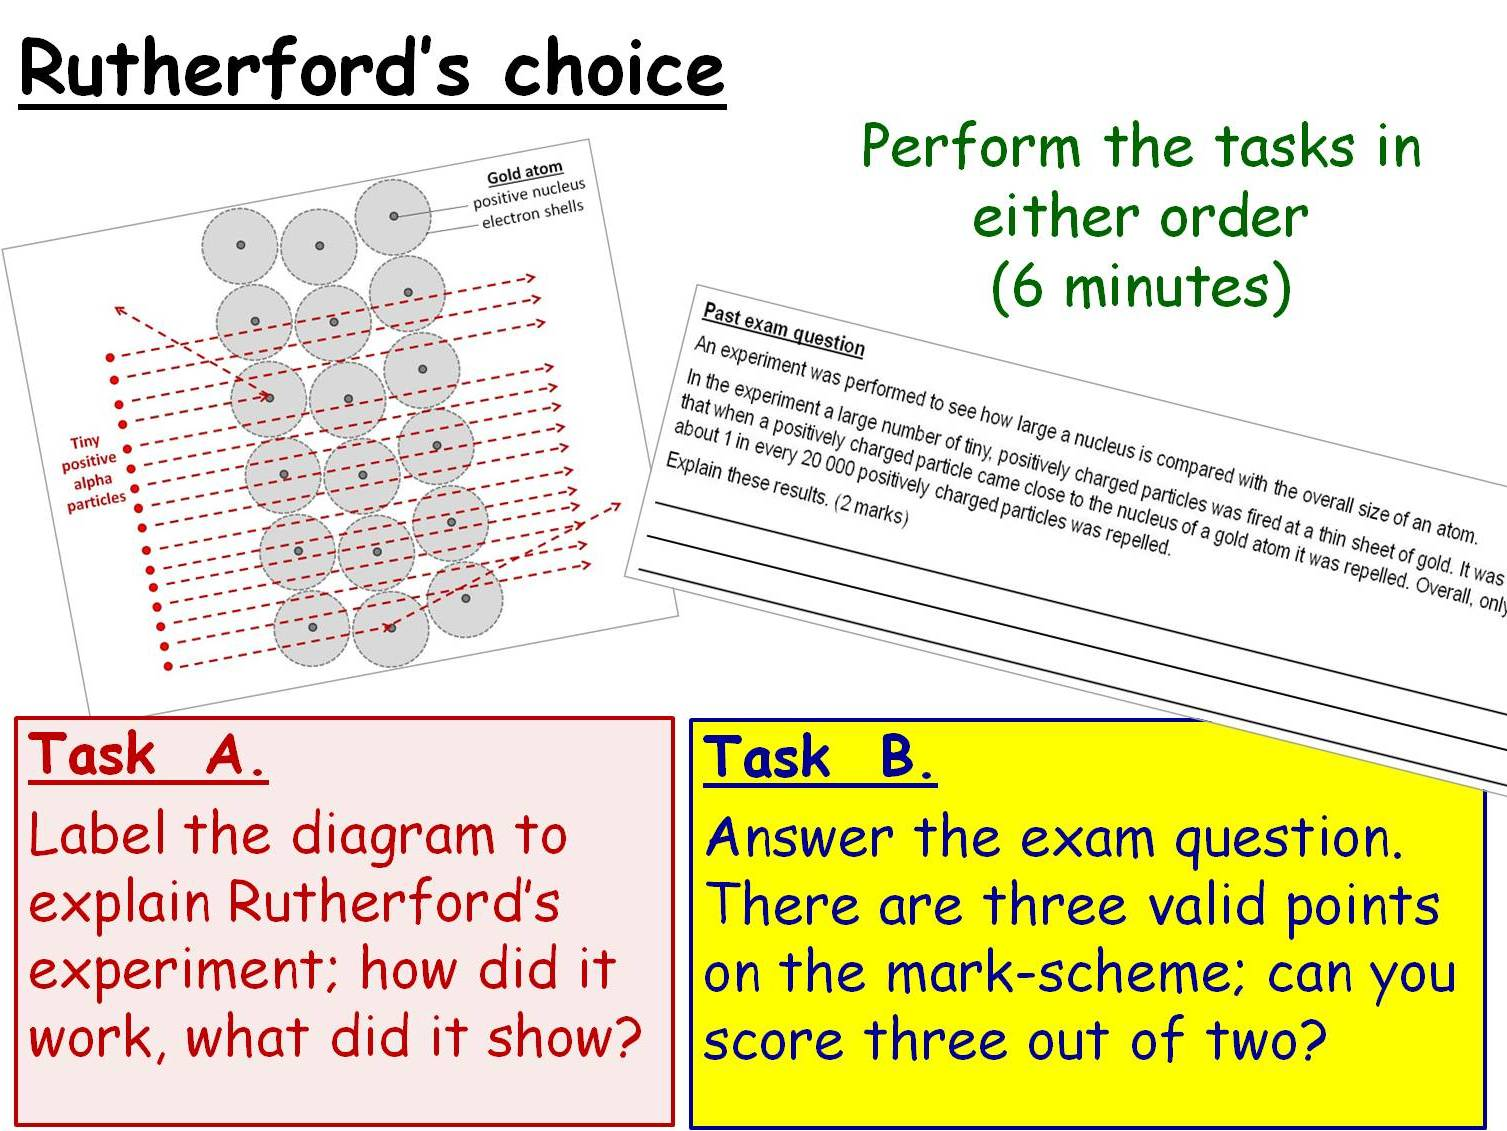 Atomic Structure and The Periodic Table: 5 Chemistry Lessons. Edexcel GCSE 9-1 Topics CC3 CC4 SC3 SC4